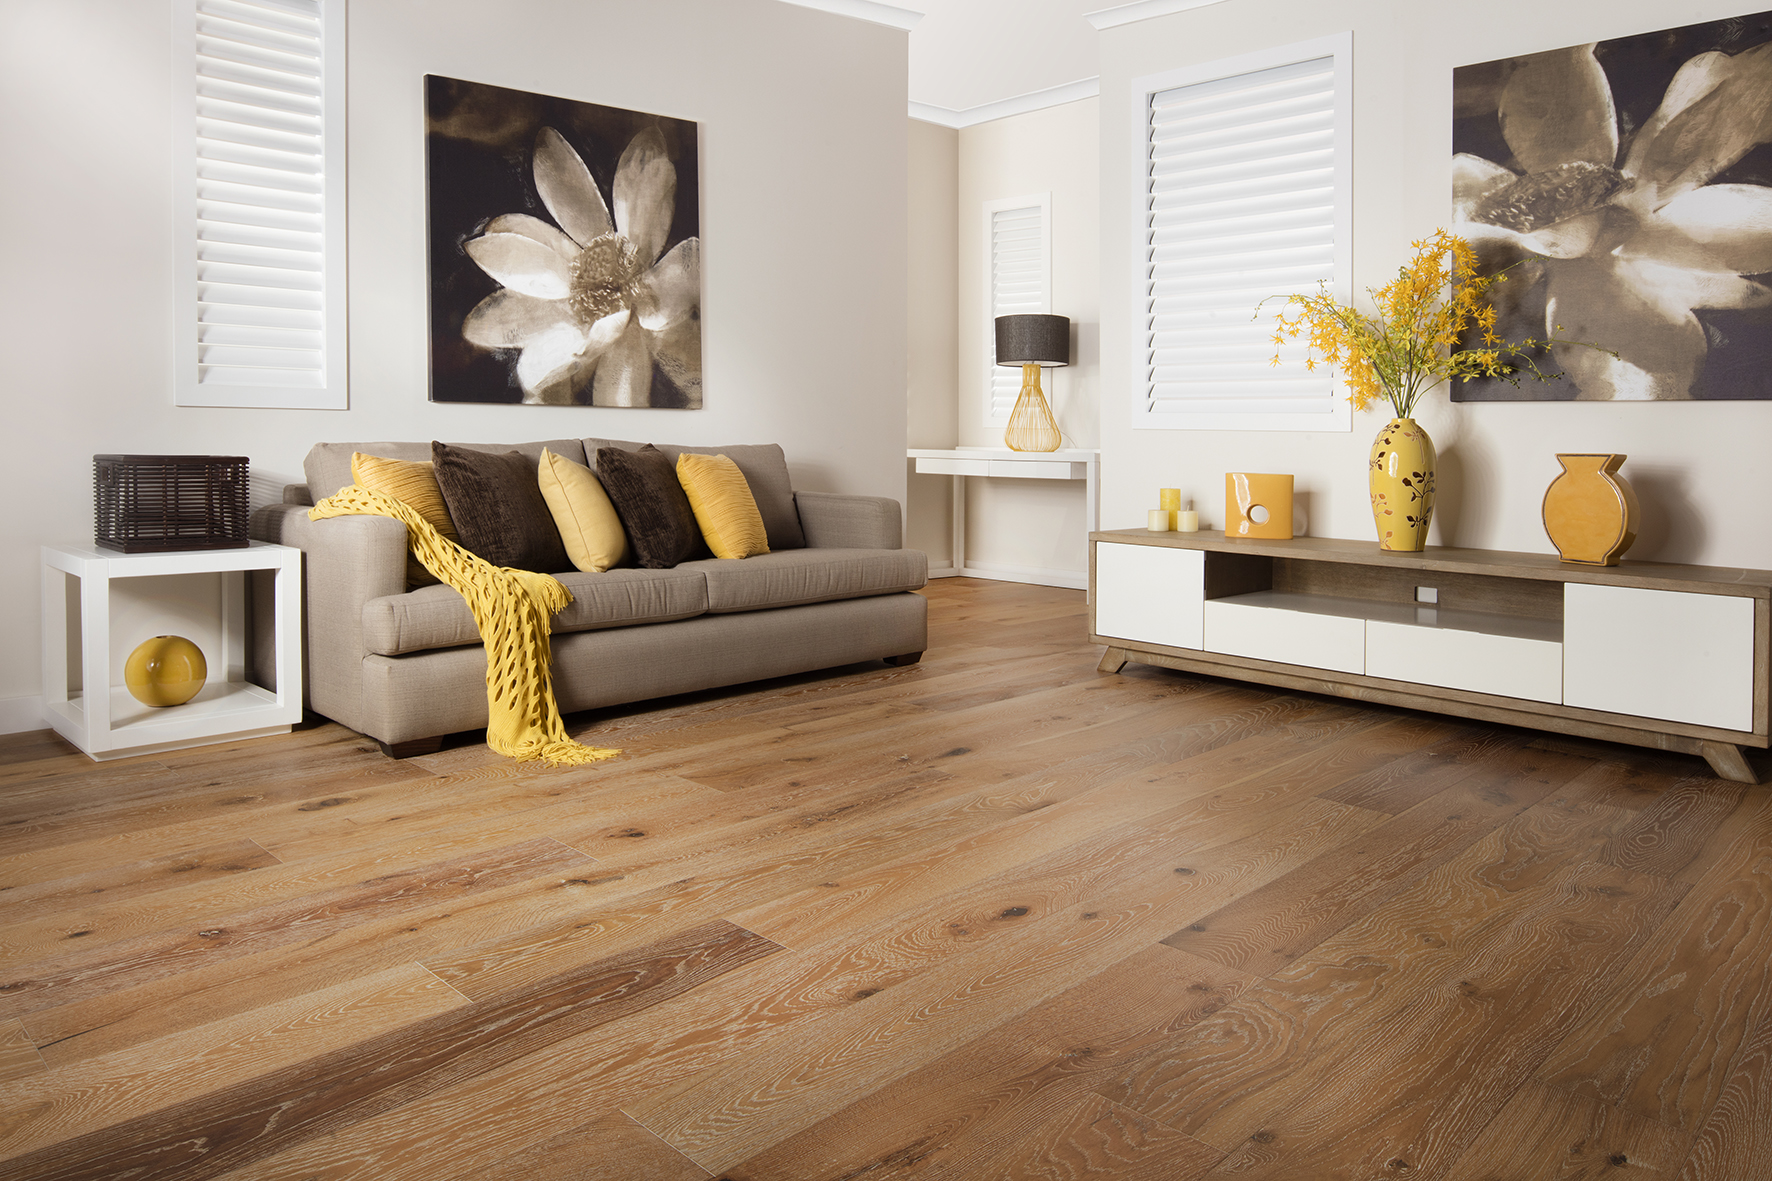 European Oak Flooring Melbourne | Features of European oak flooring